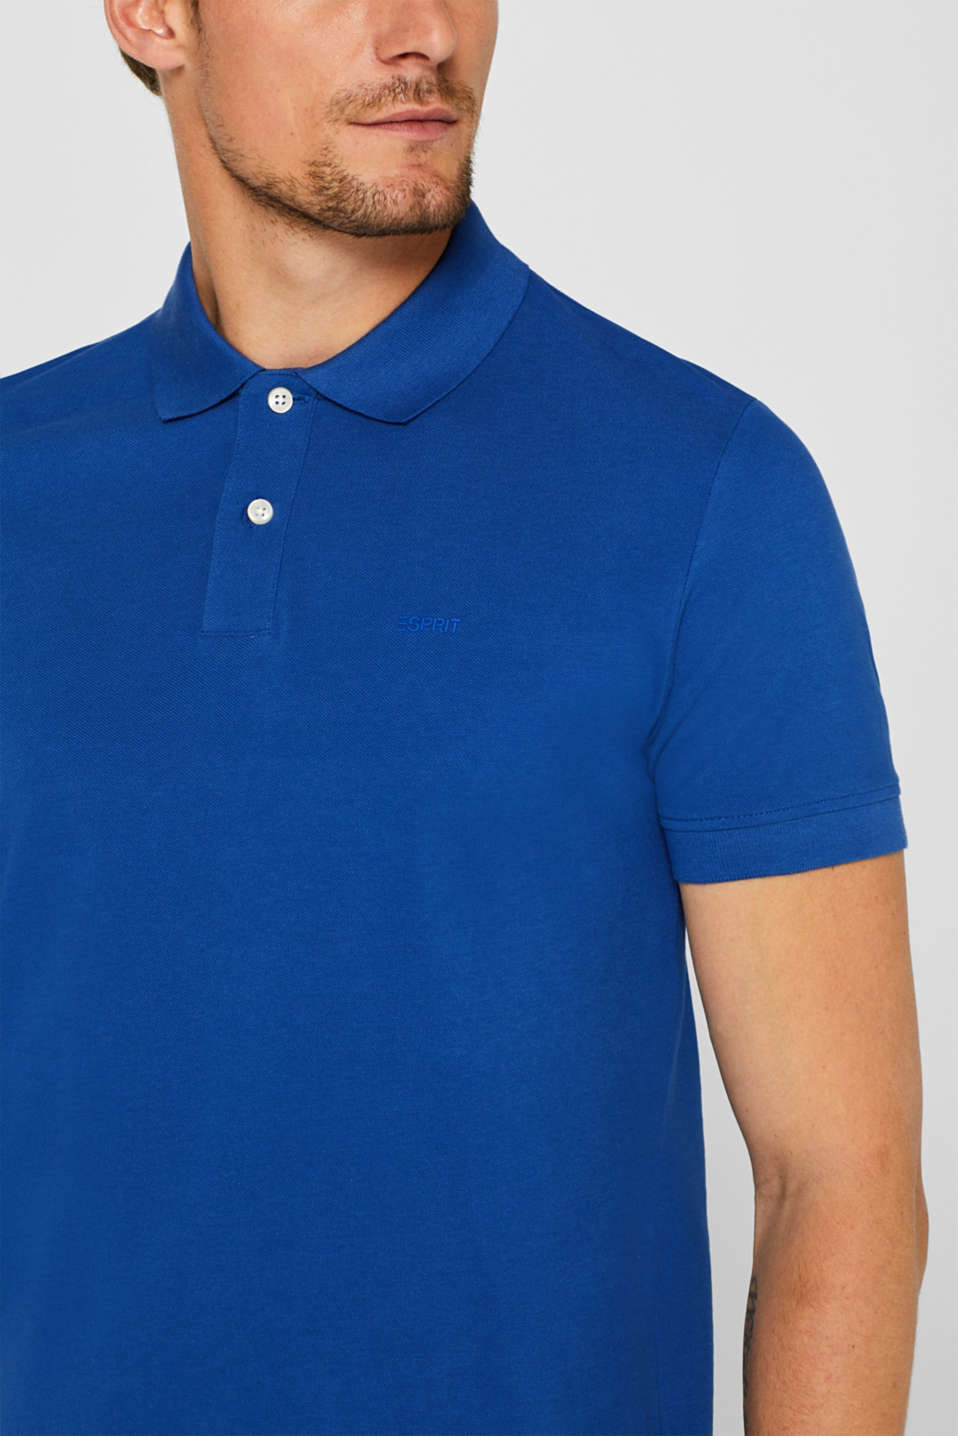 Piqué polo shirt in 100% cotton, BRIGHT BLUE, detail image number 1